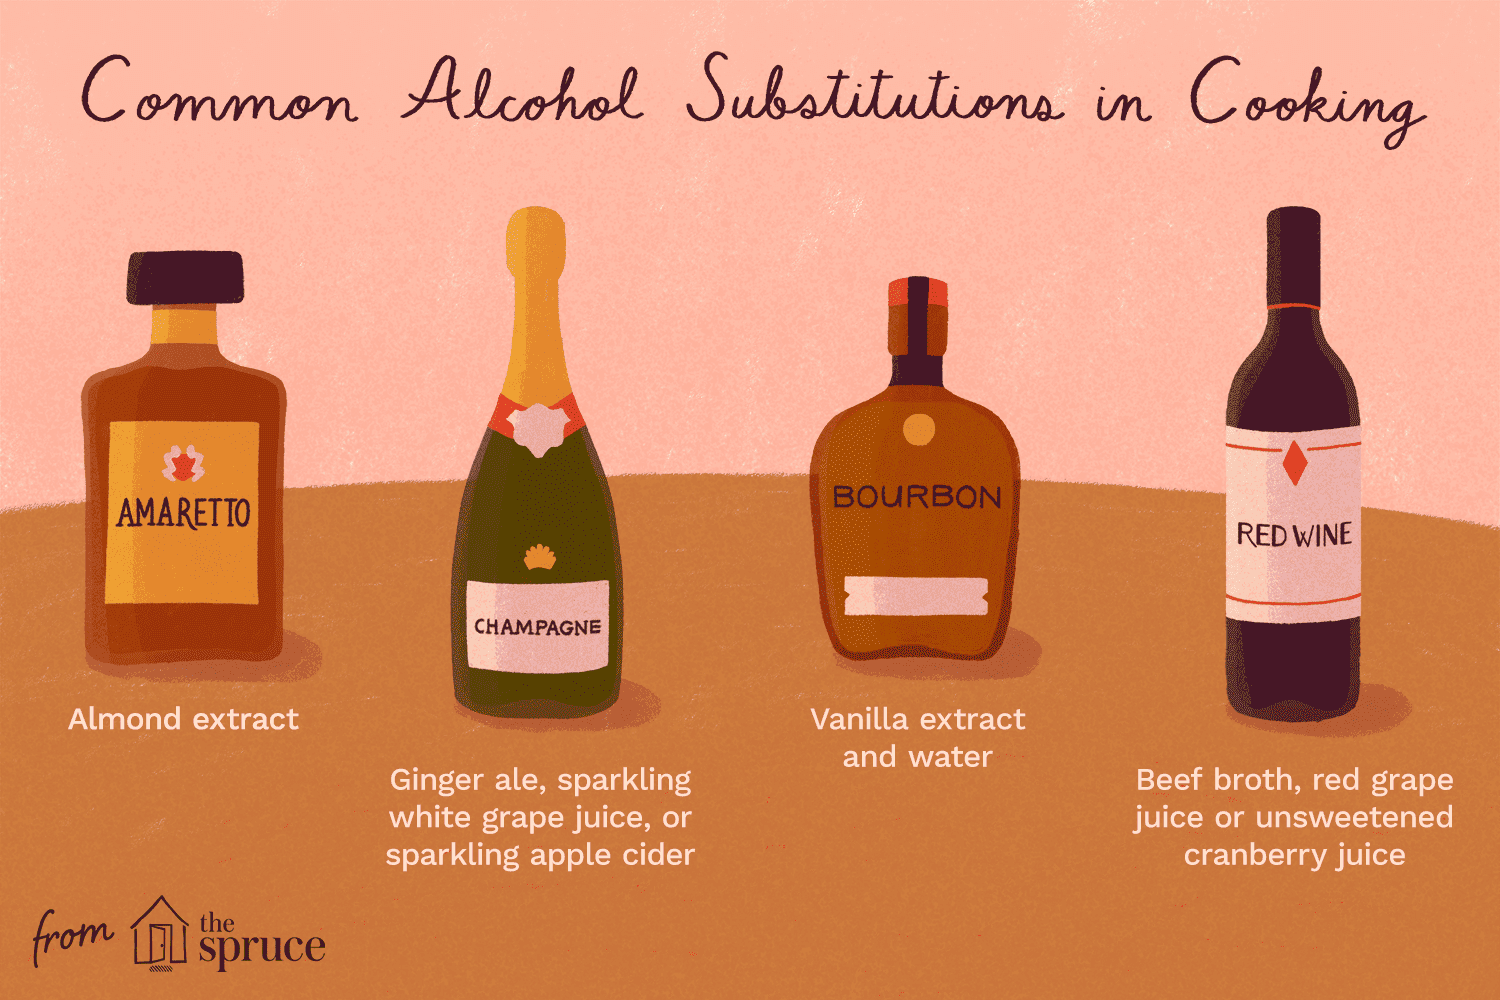 Alcohol Substitution Guide